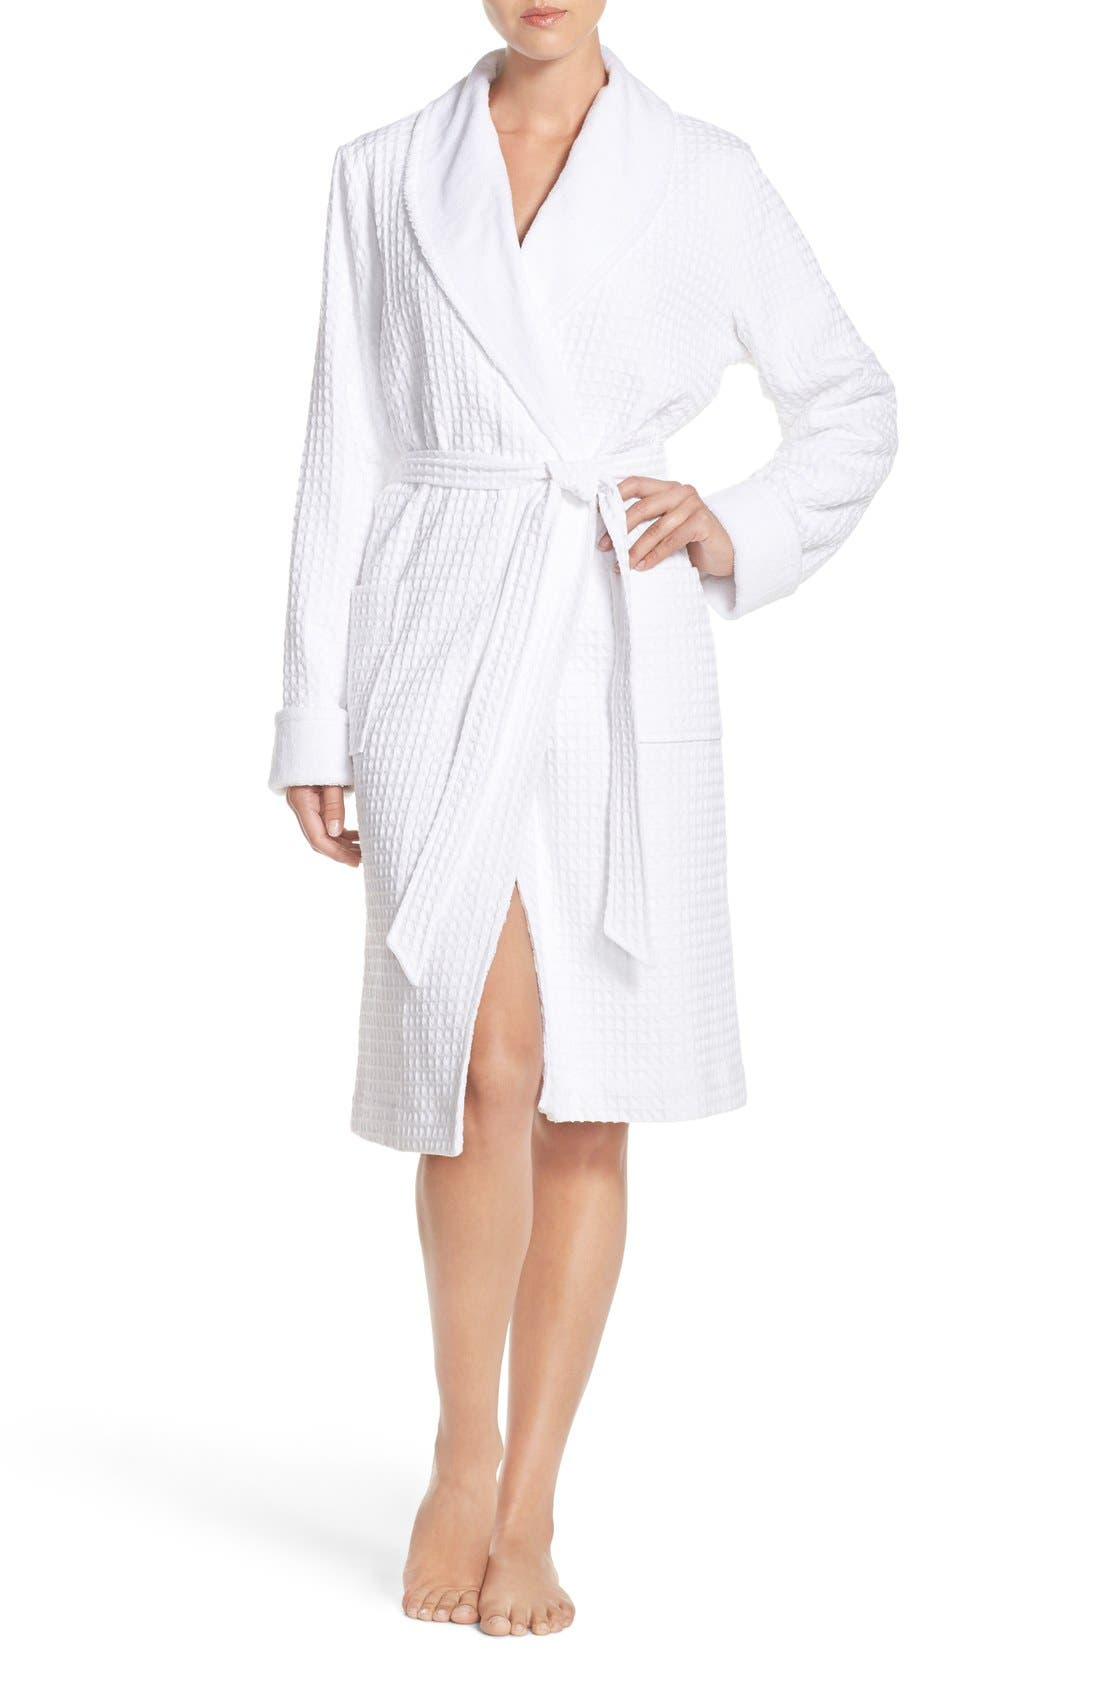 Alternate Image 1 Selected - Nordstrom Lingerie Terry Cotton Robe